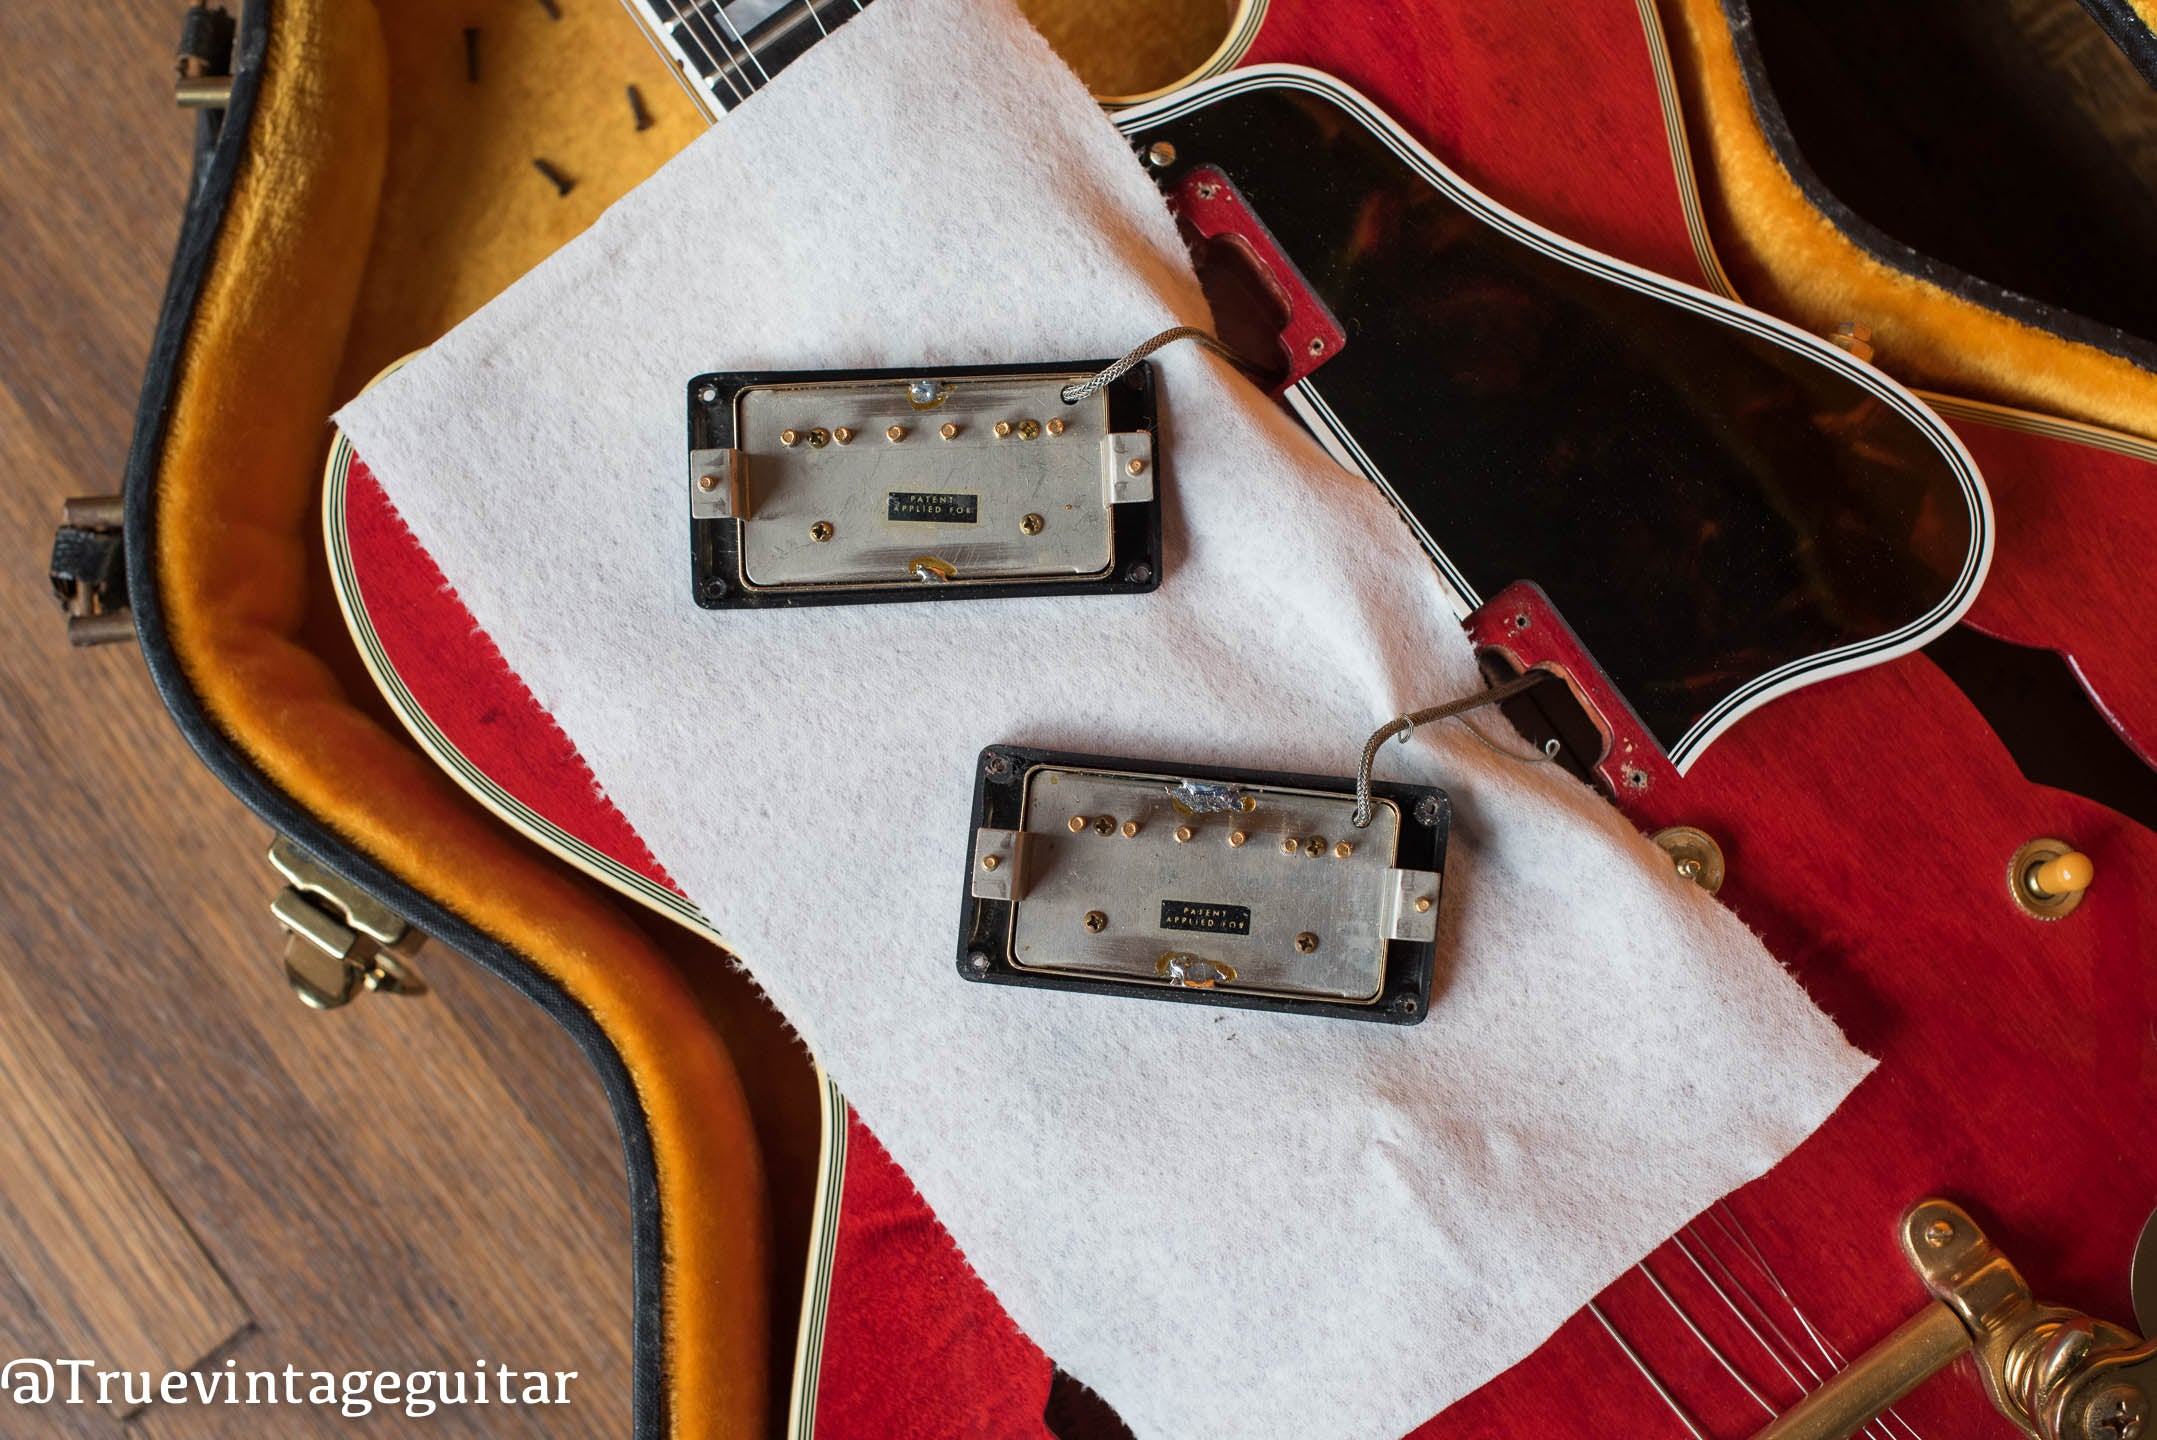 1960 Gibson ES-355 TDSV original Patent Applied For Humbucking pickups, PAF pickups